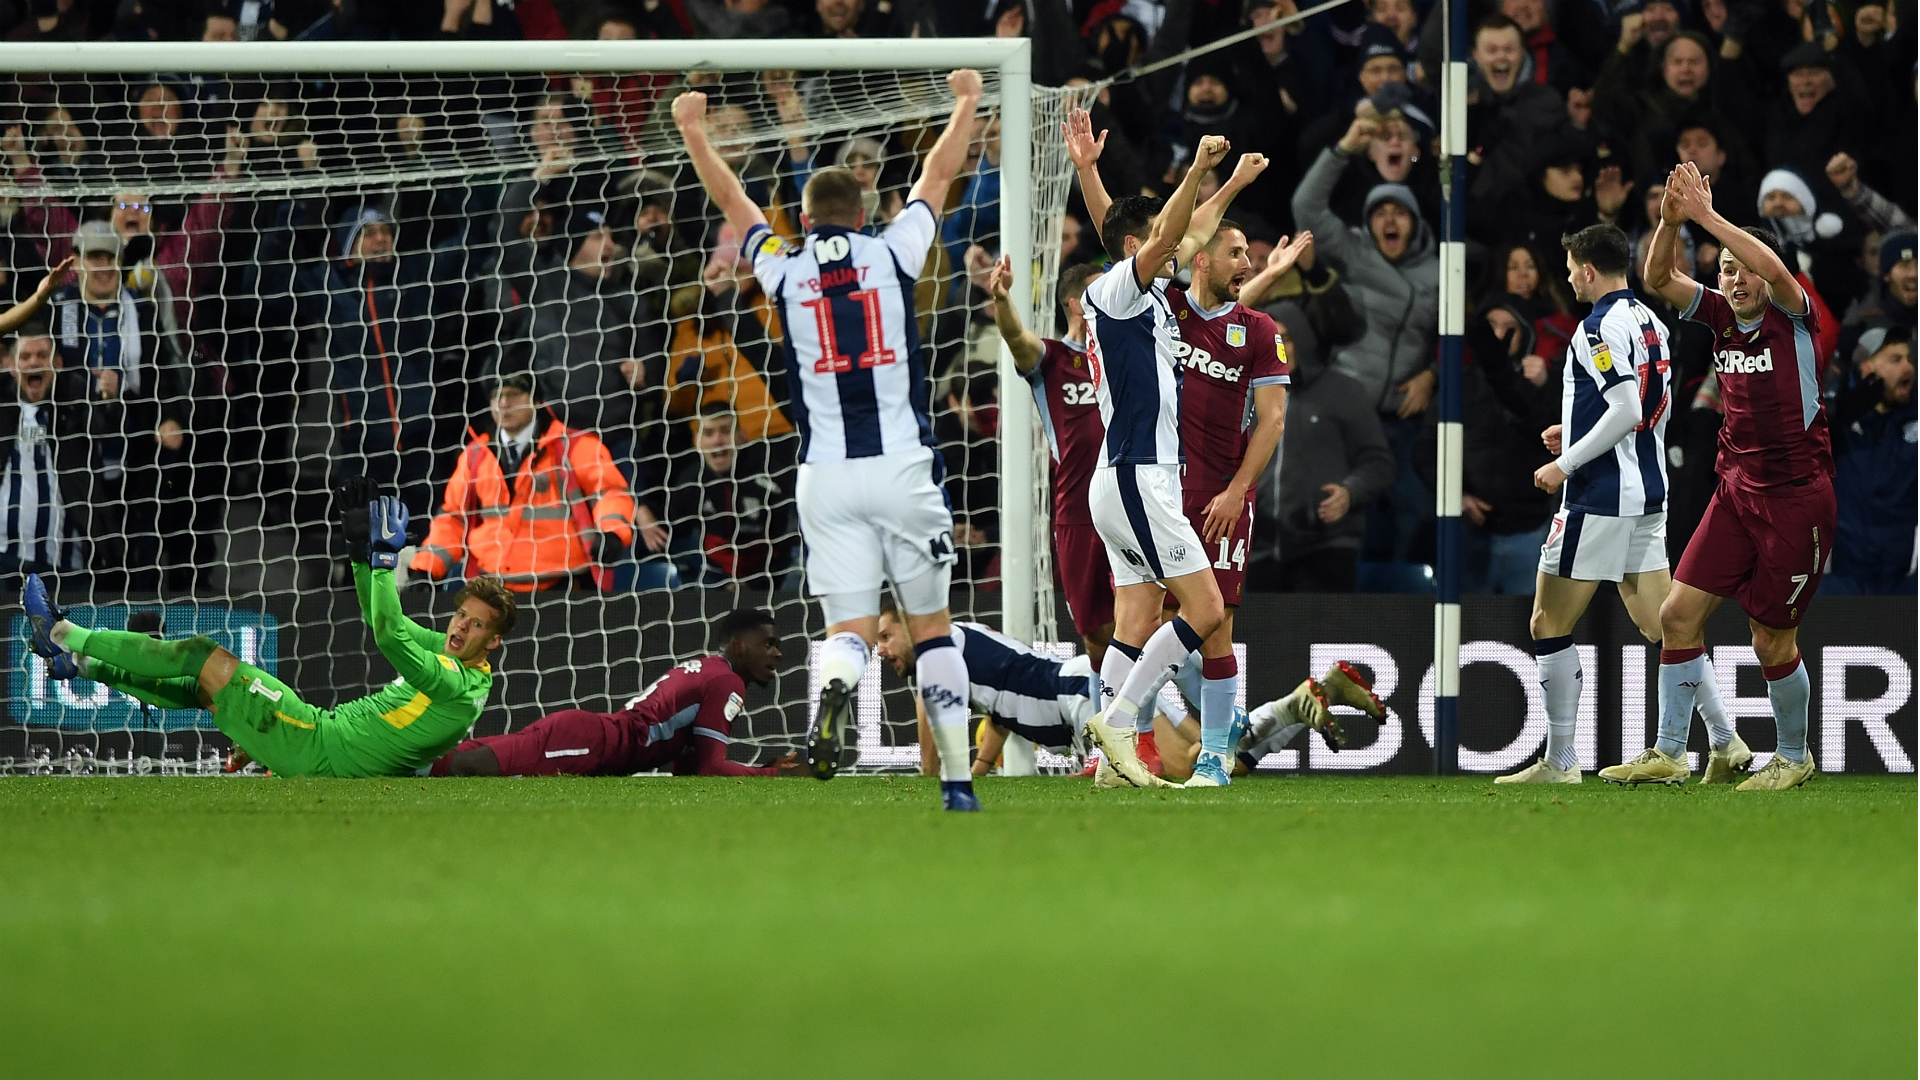 West Brom 2 Aston Villa 2: Controversial Rodriguez goal snatches draw